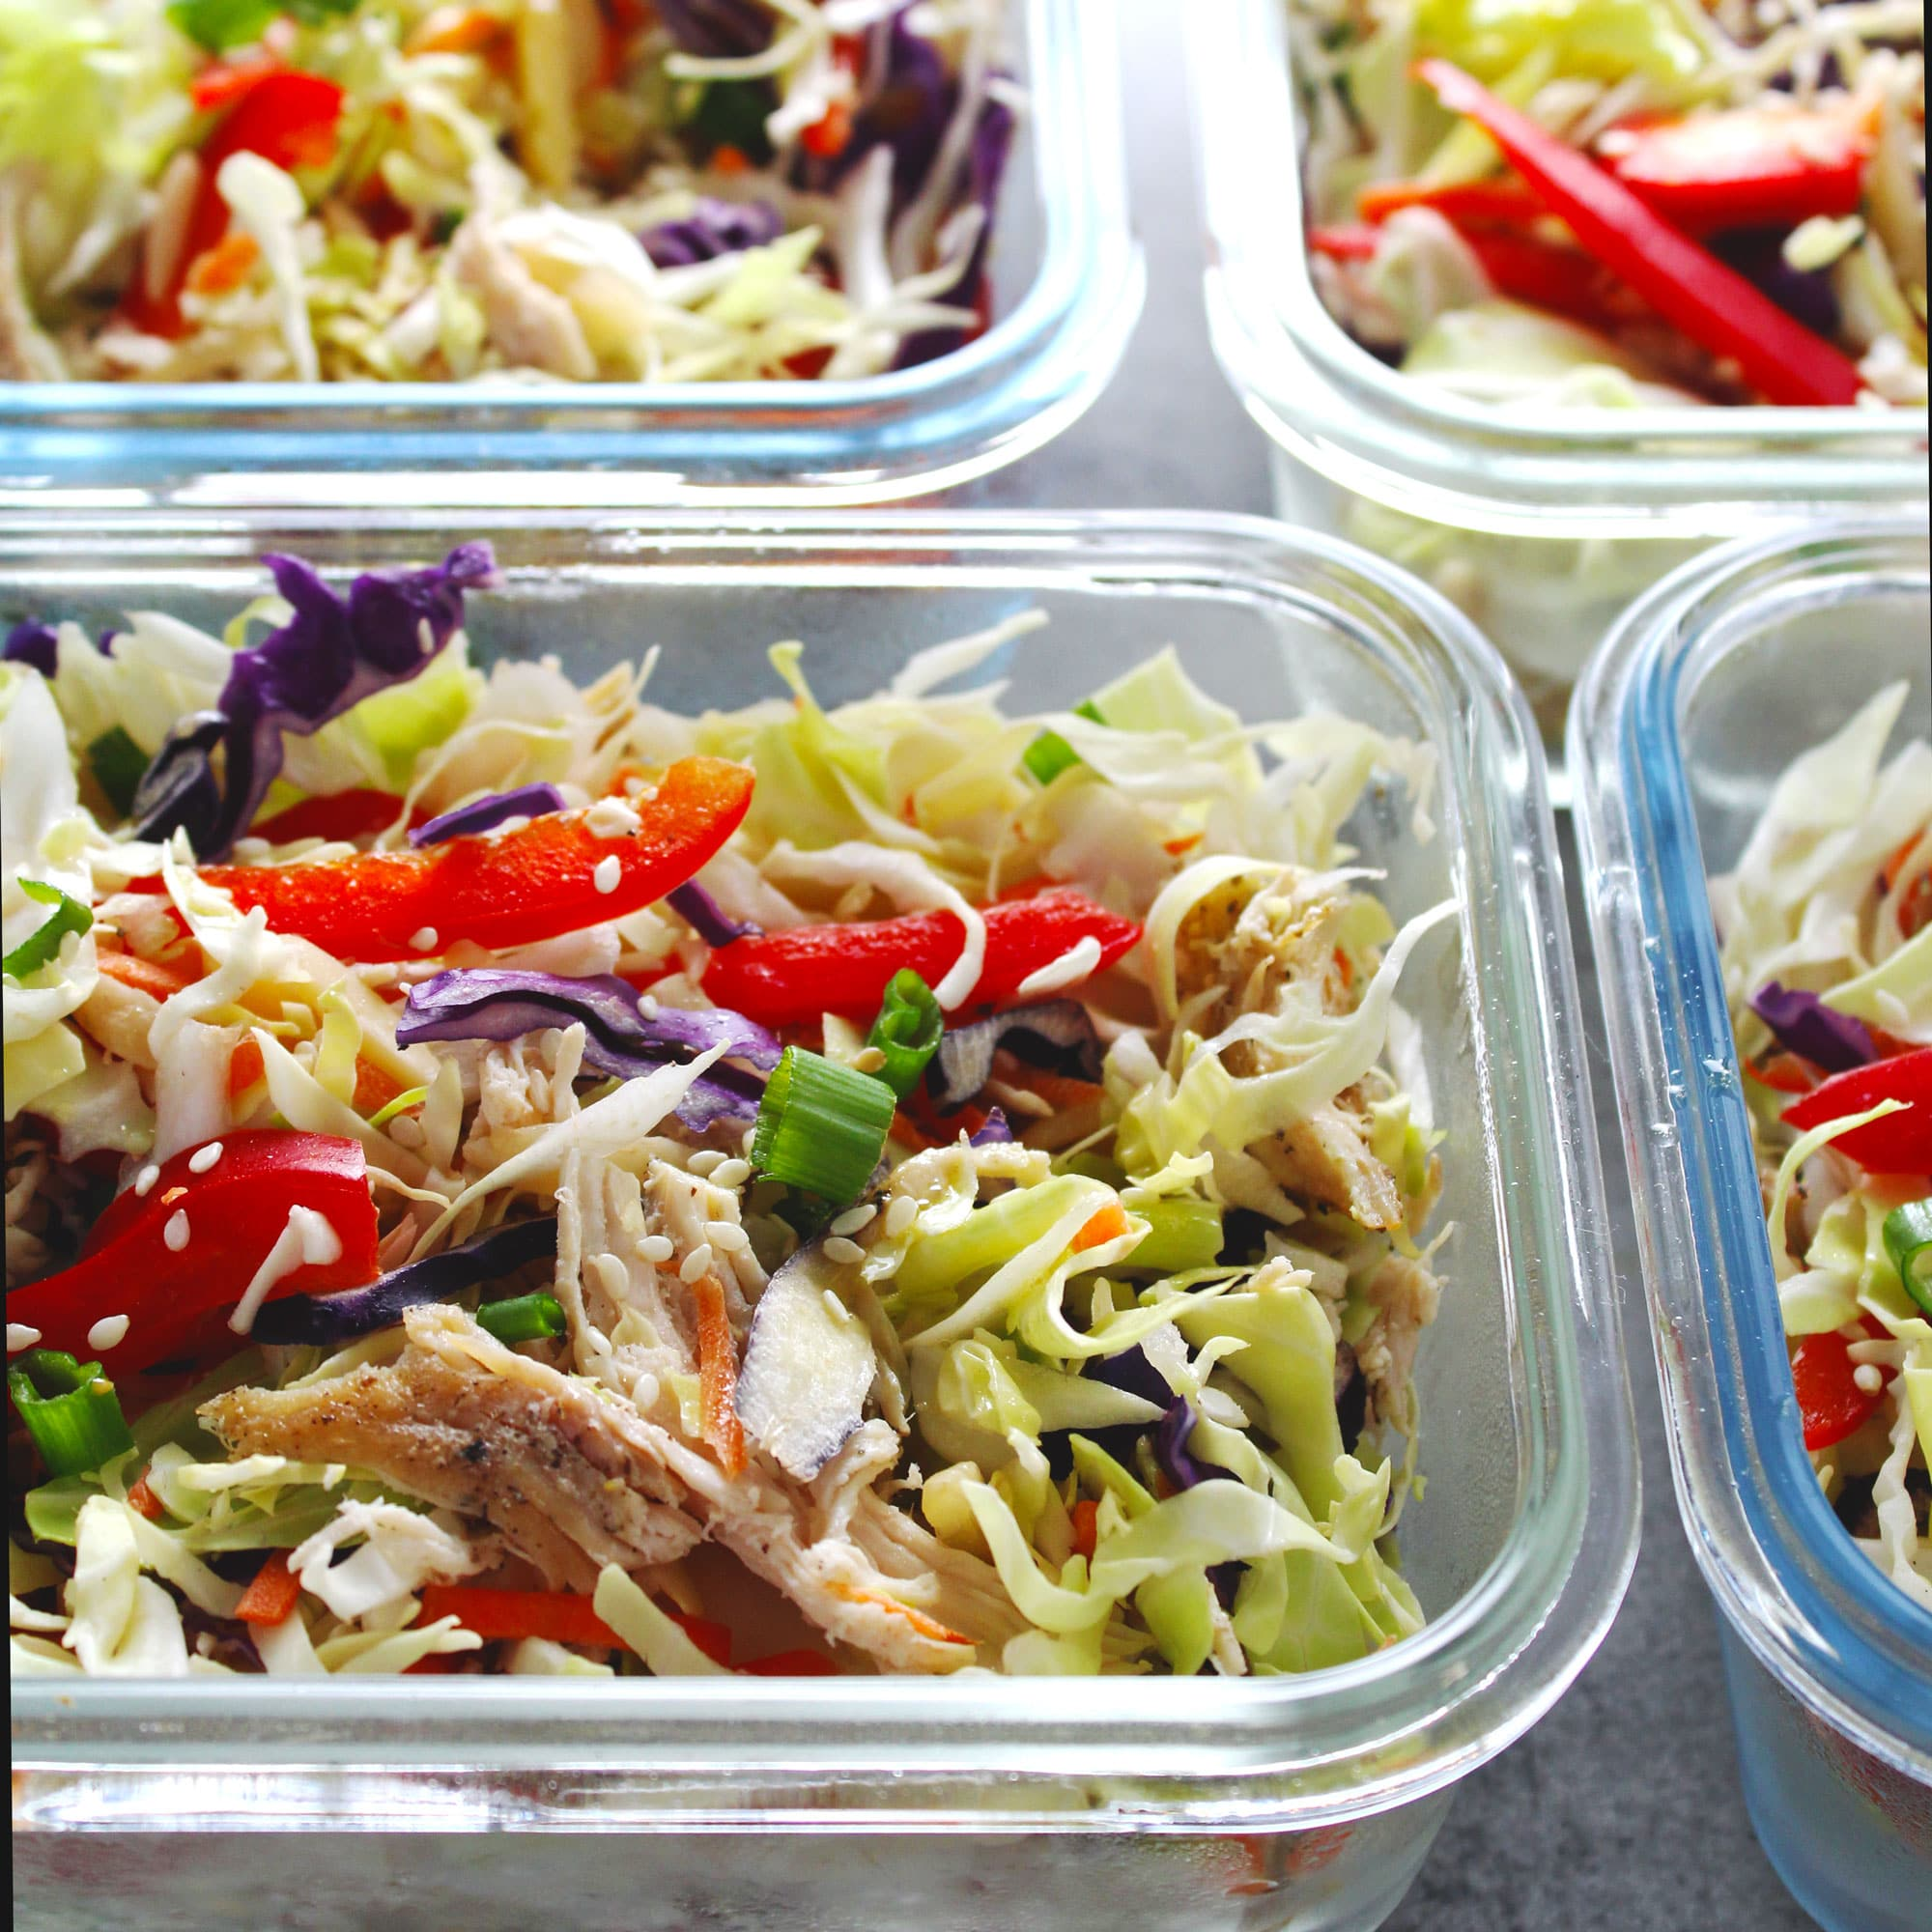 Salad in glass containers